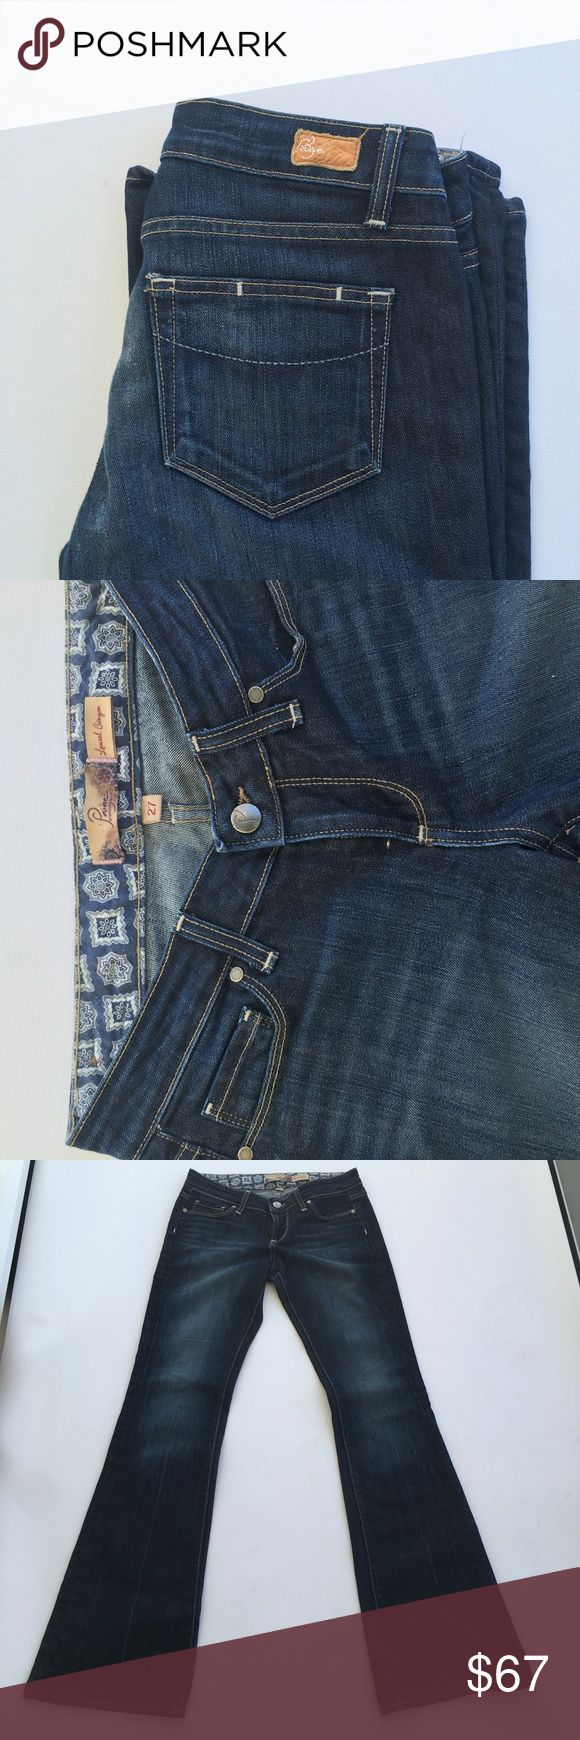 Paige Premium denim -Laurel Canyon style Sz 27 A low rise boot cut that is slim through the hips and thighs while maintaining a classic boot cut shape. Condition: excellent PAIGE Jeans Boot Cut